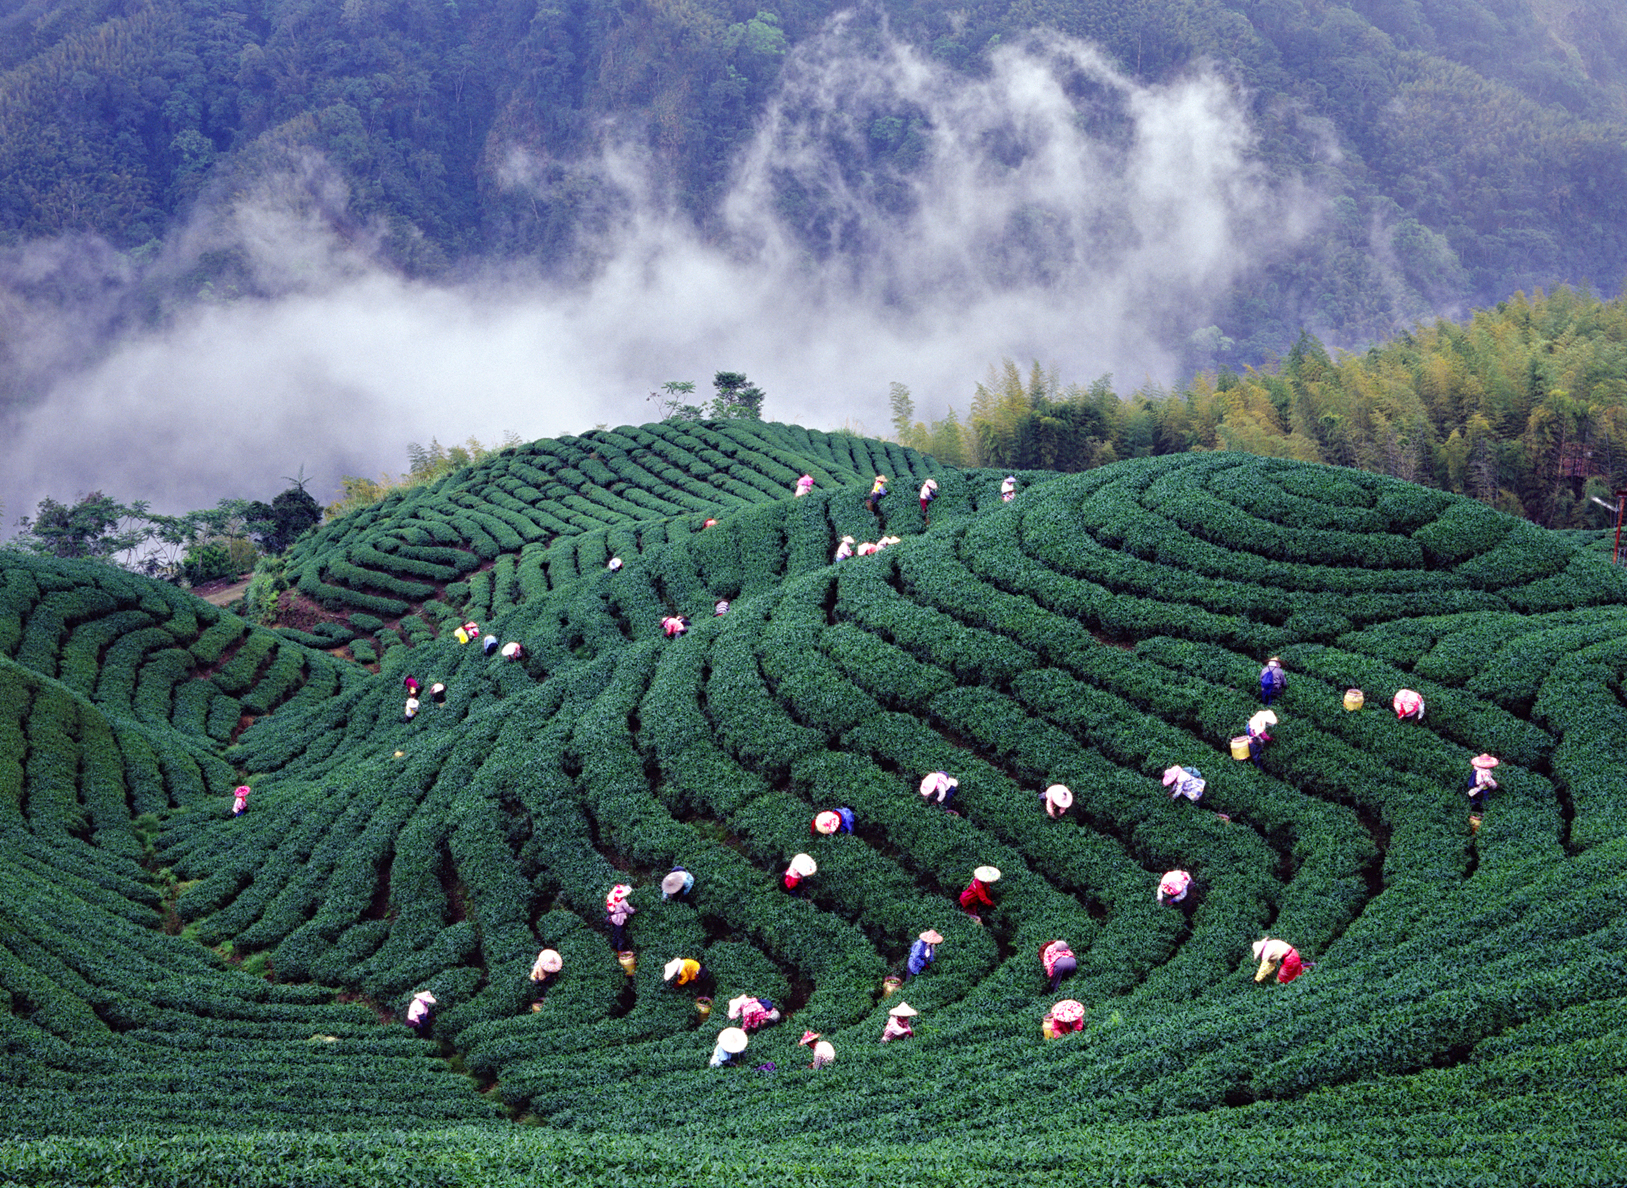 2006 Photography Competition Excellent Work Yang, Bo-cheng - Scenery of Tea Garden